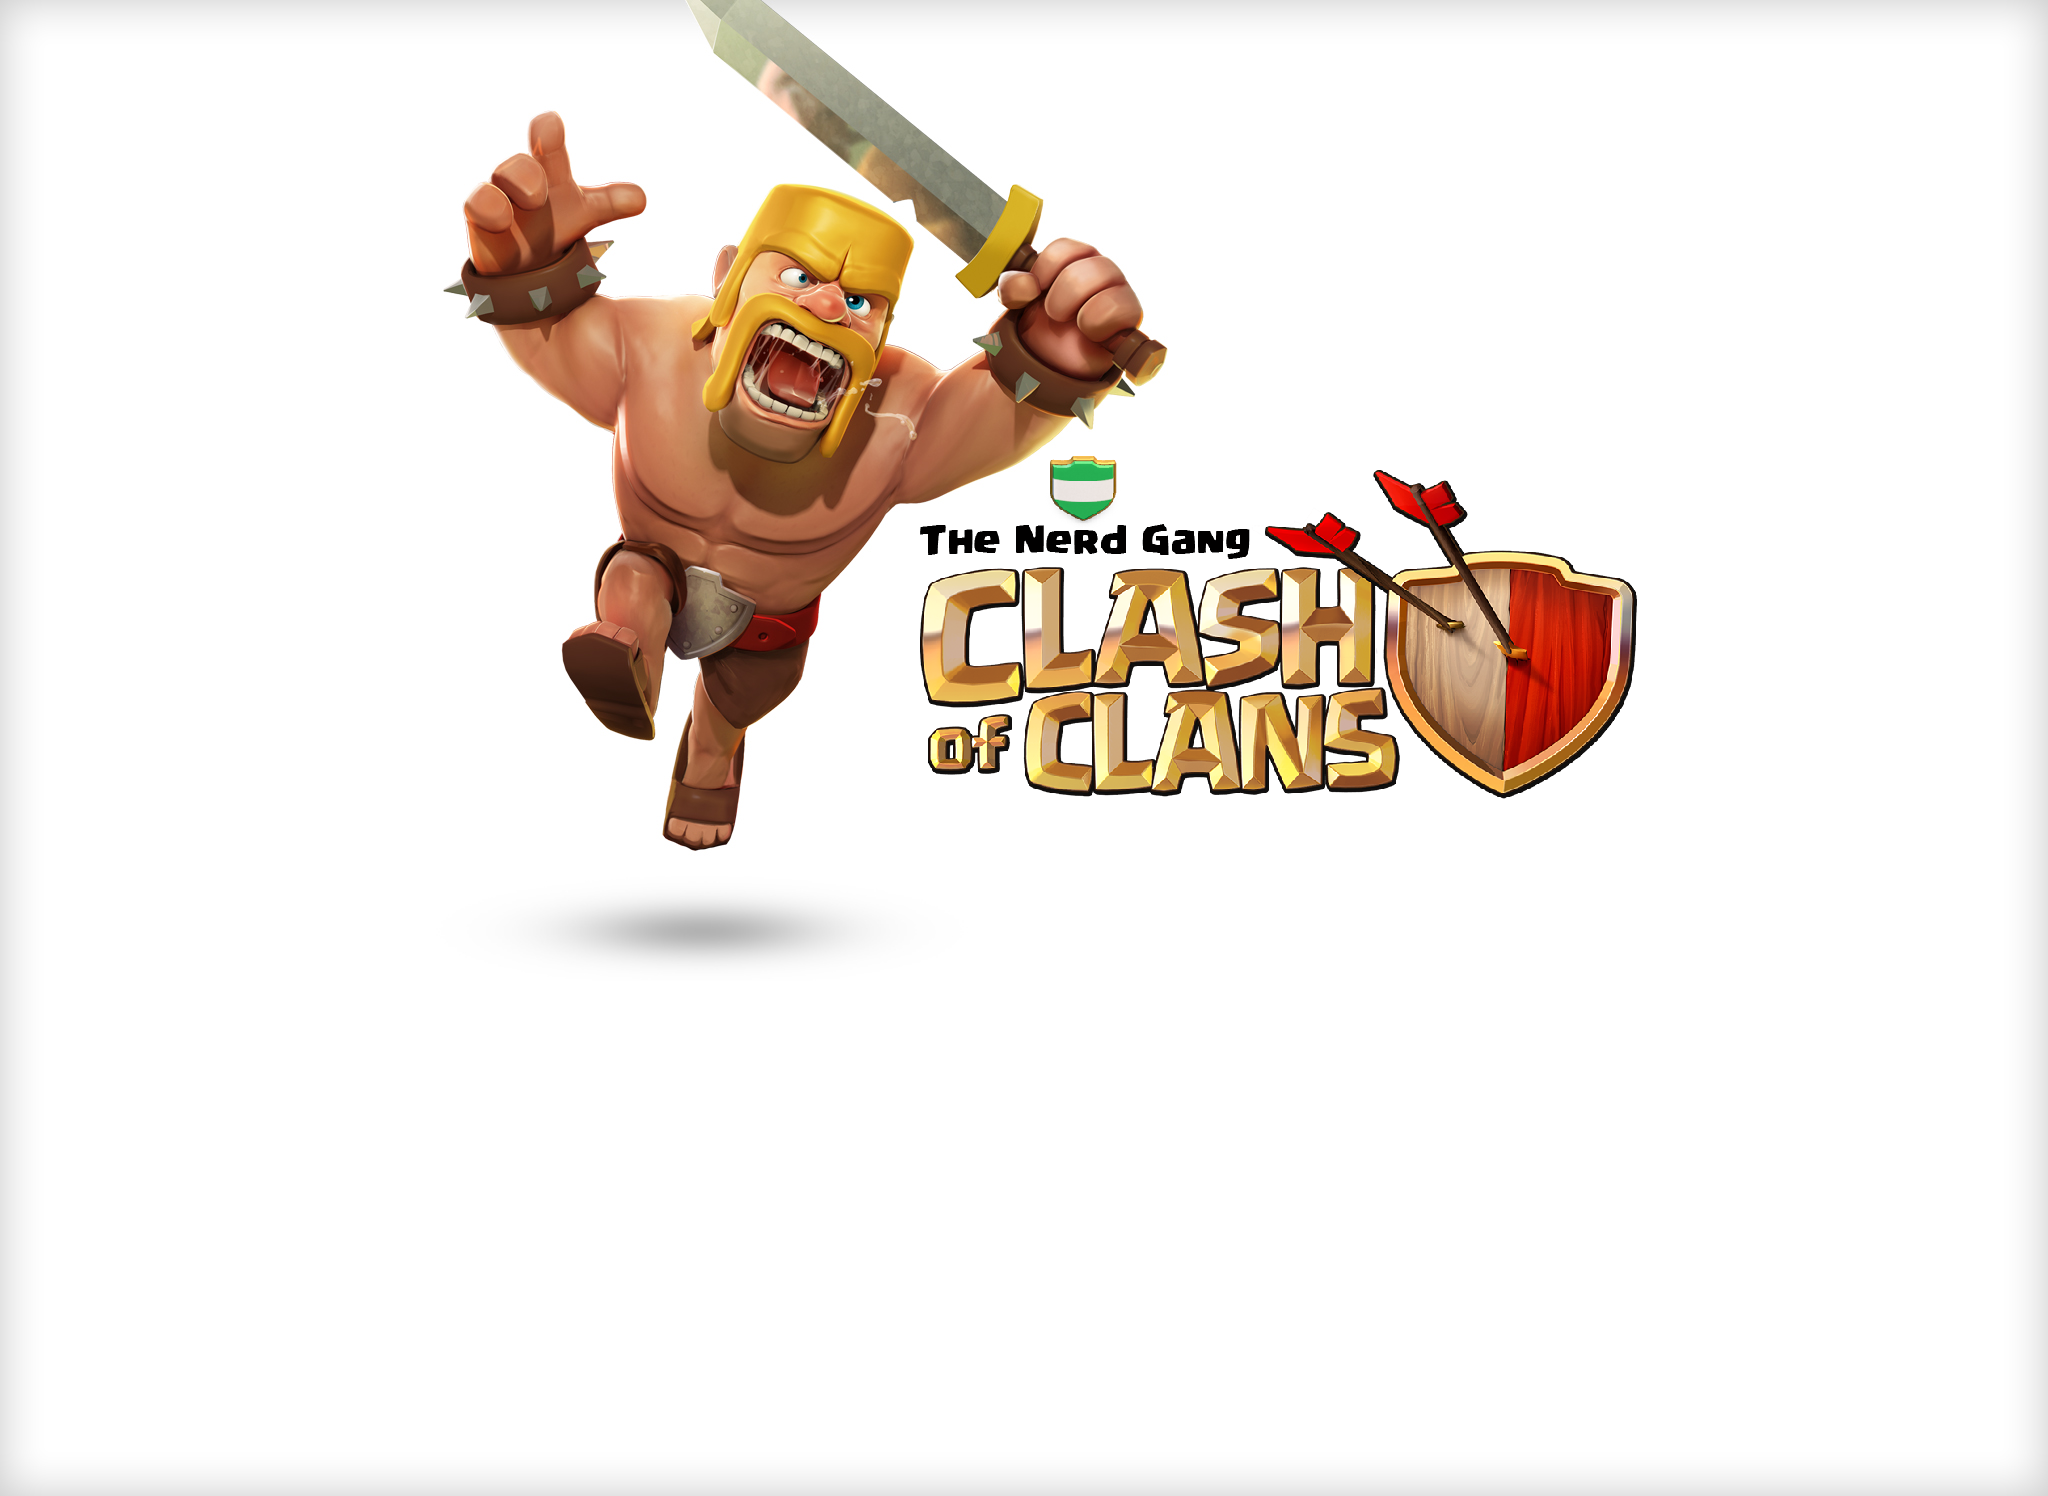 Clash of Clans Wallpaper 2048x1496